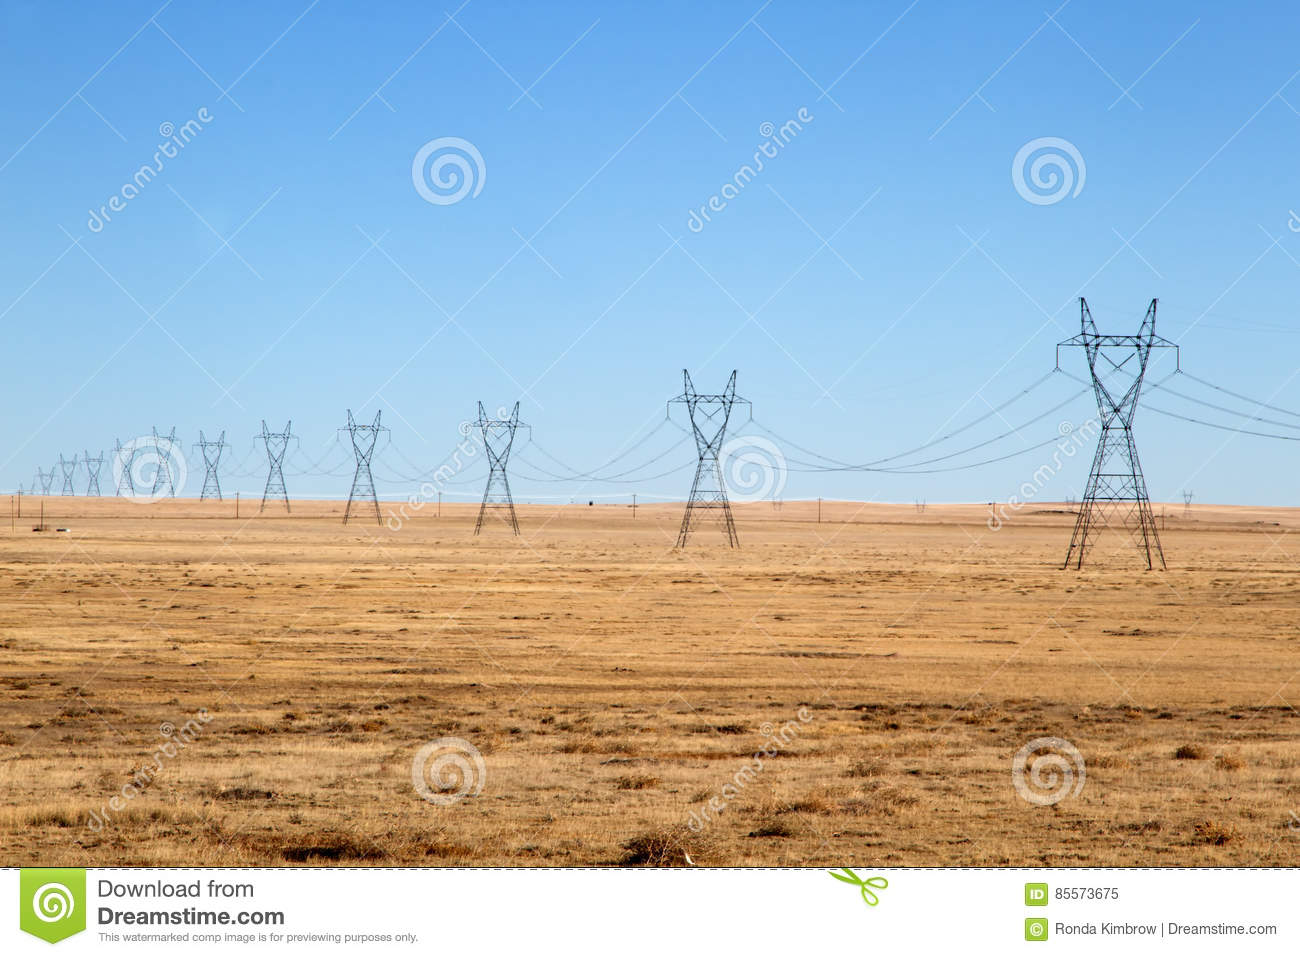 Electrical Power Lines under a blue sky